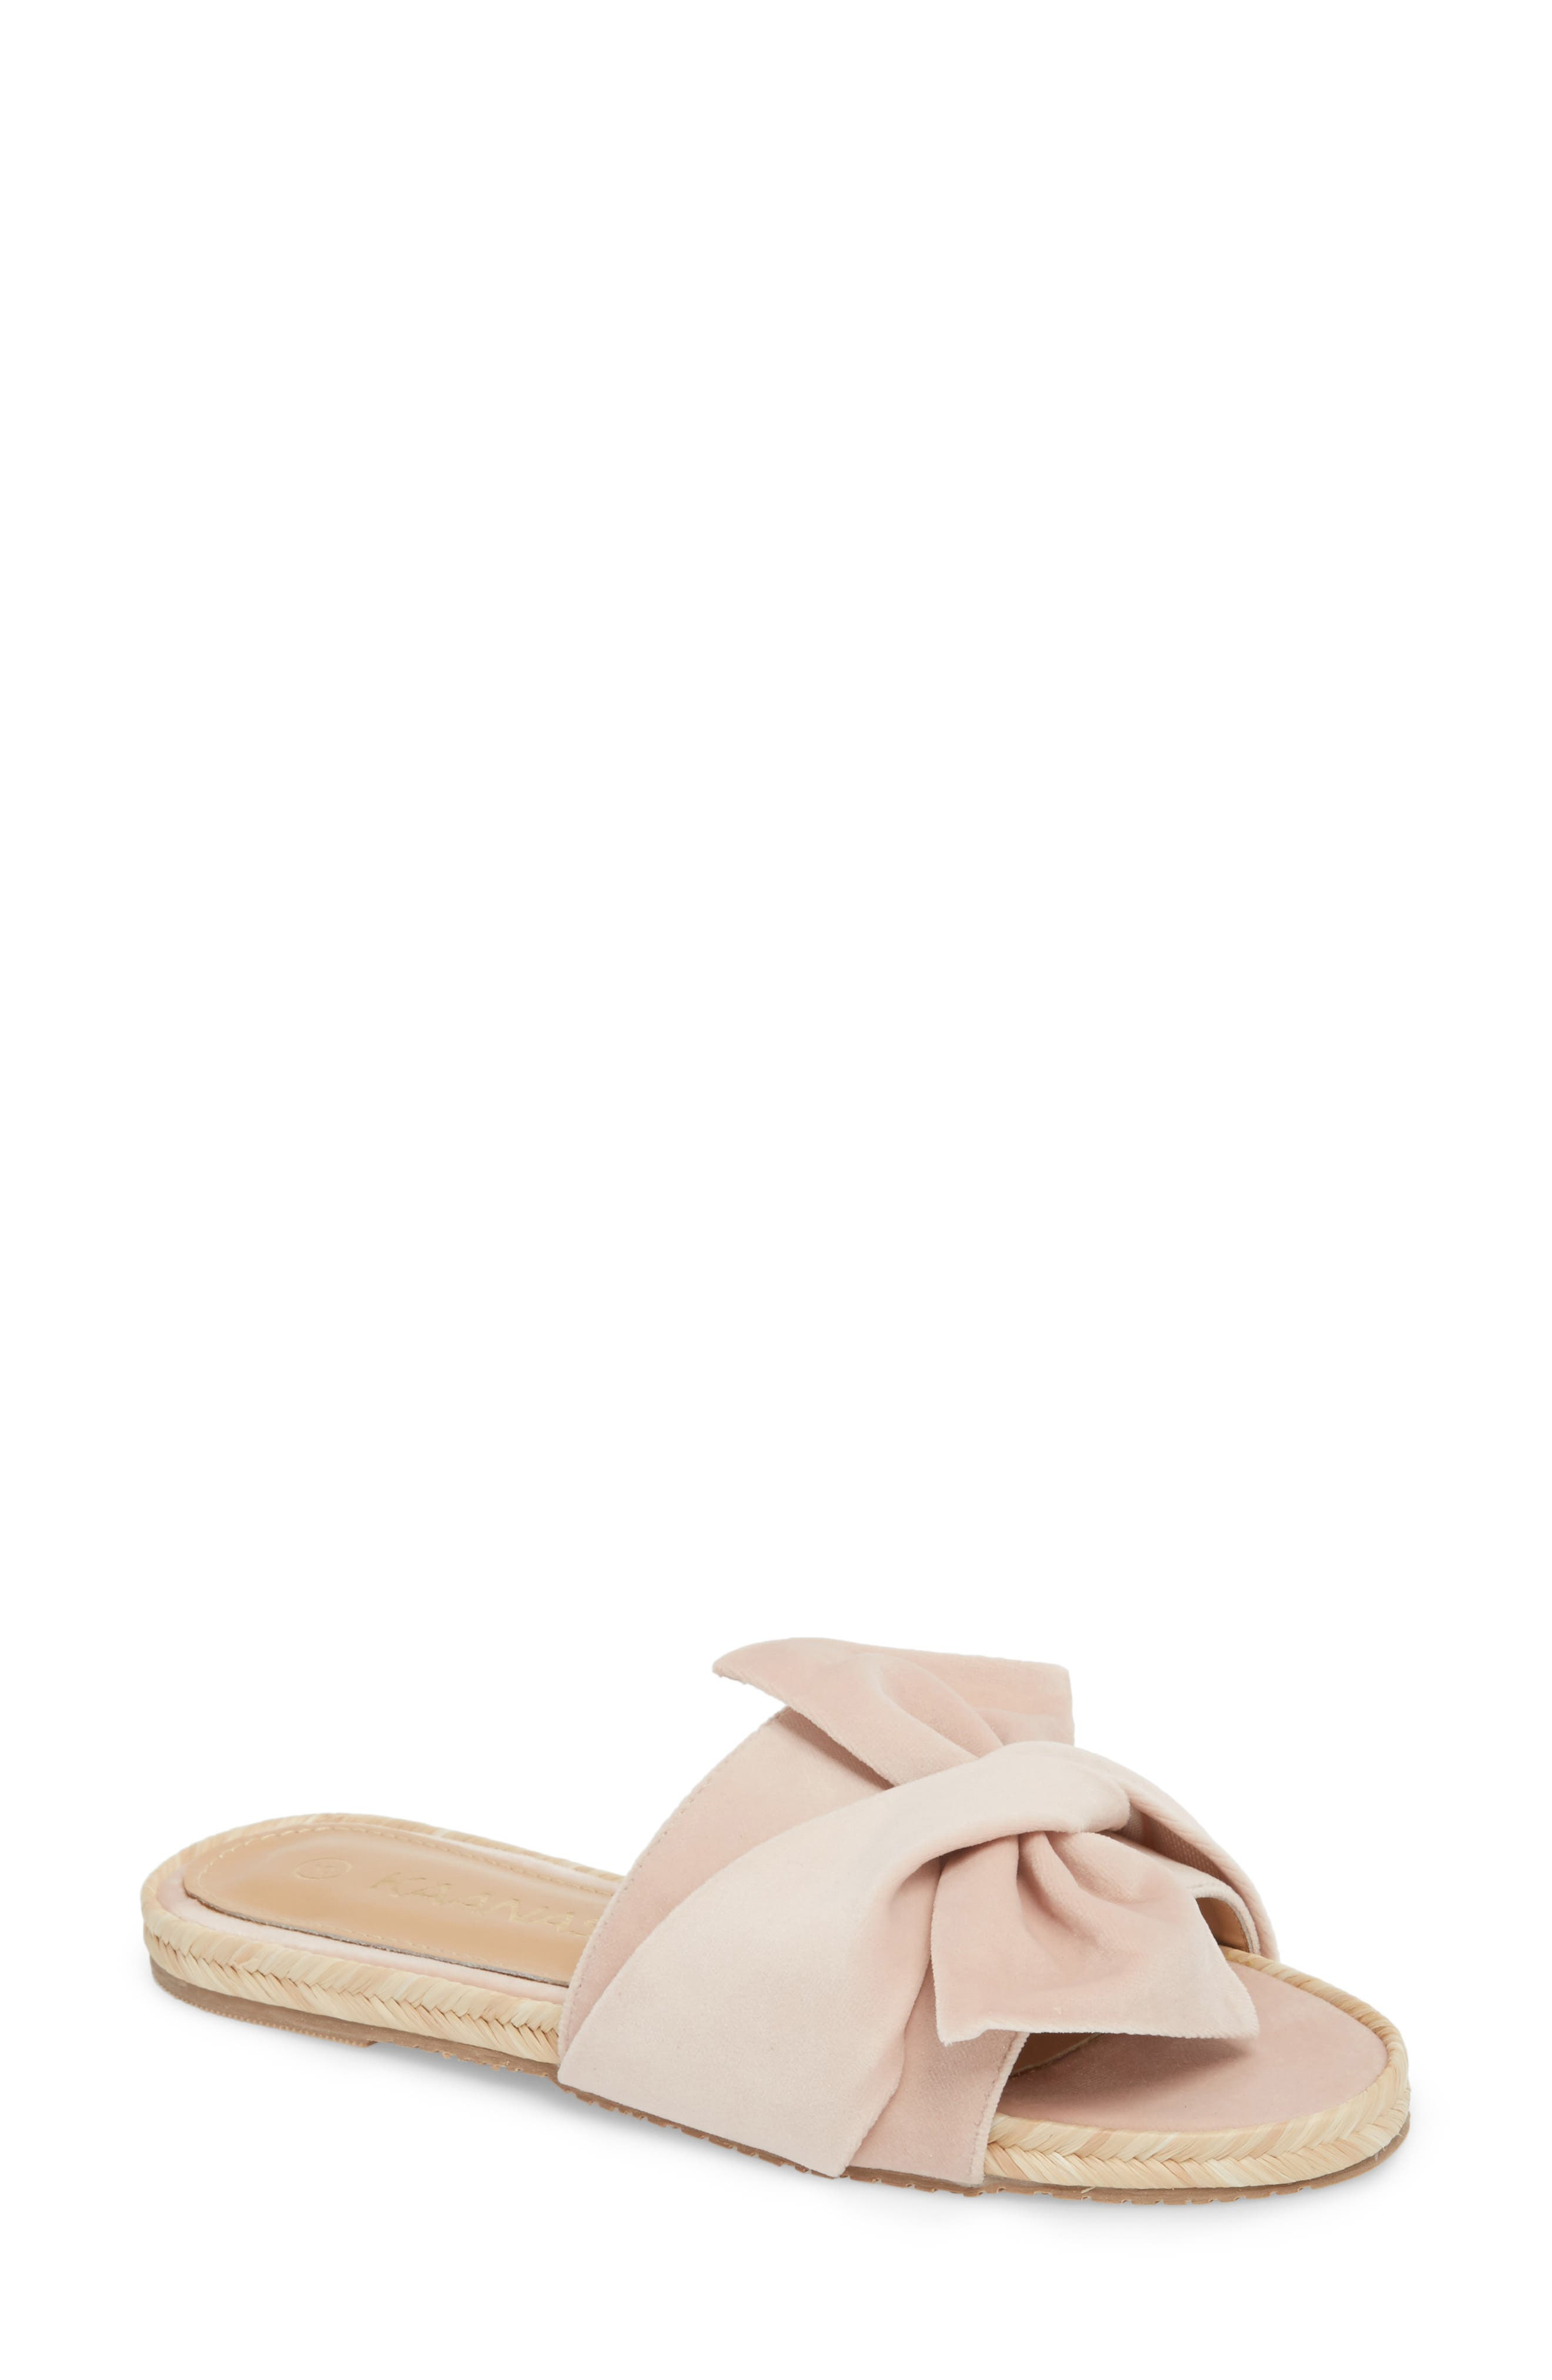 Sausalito Knotted Slide Sandal,                             Main thumbnail 1, color,                             Nude